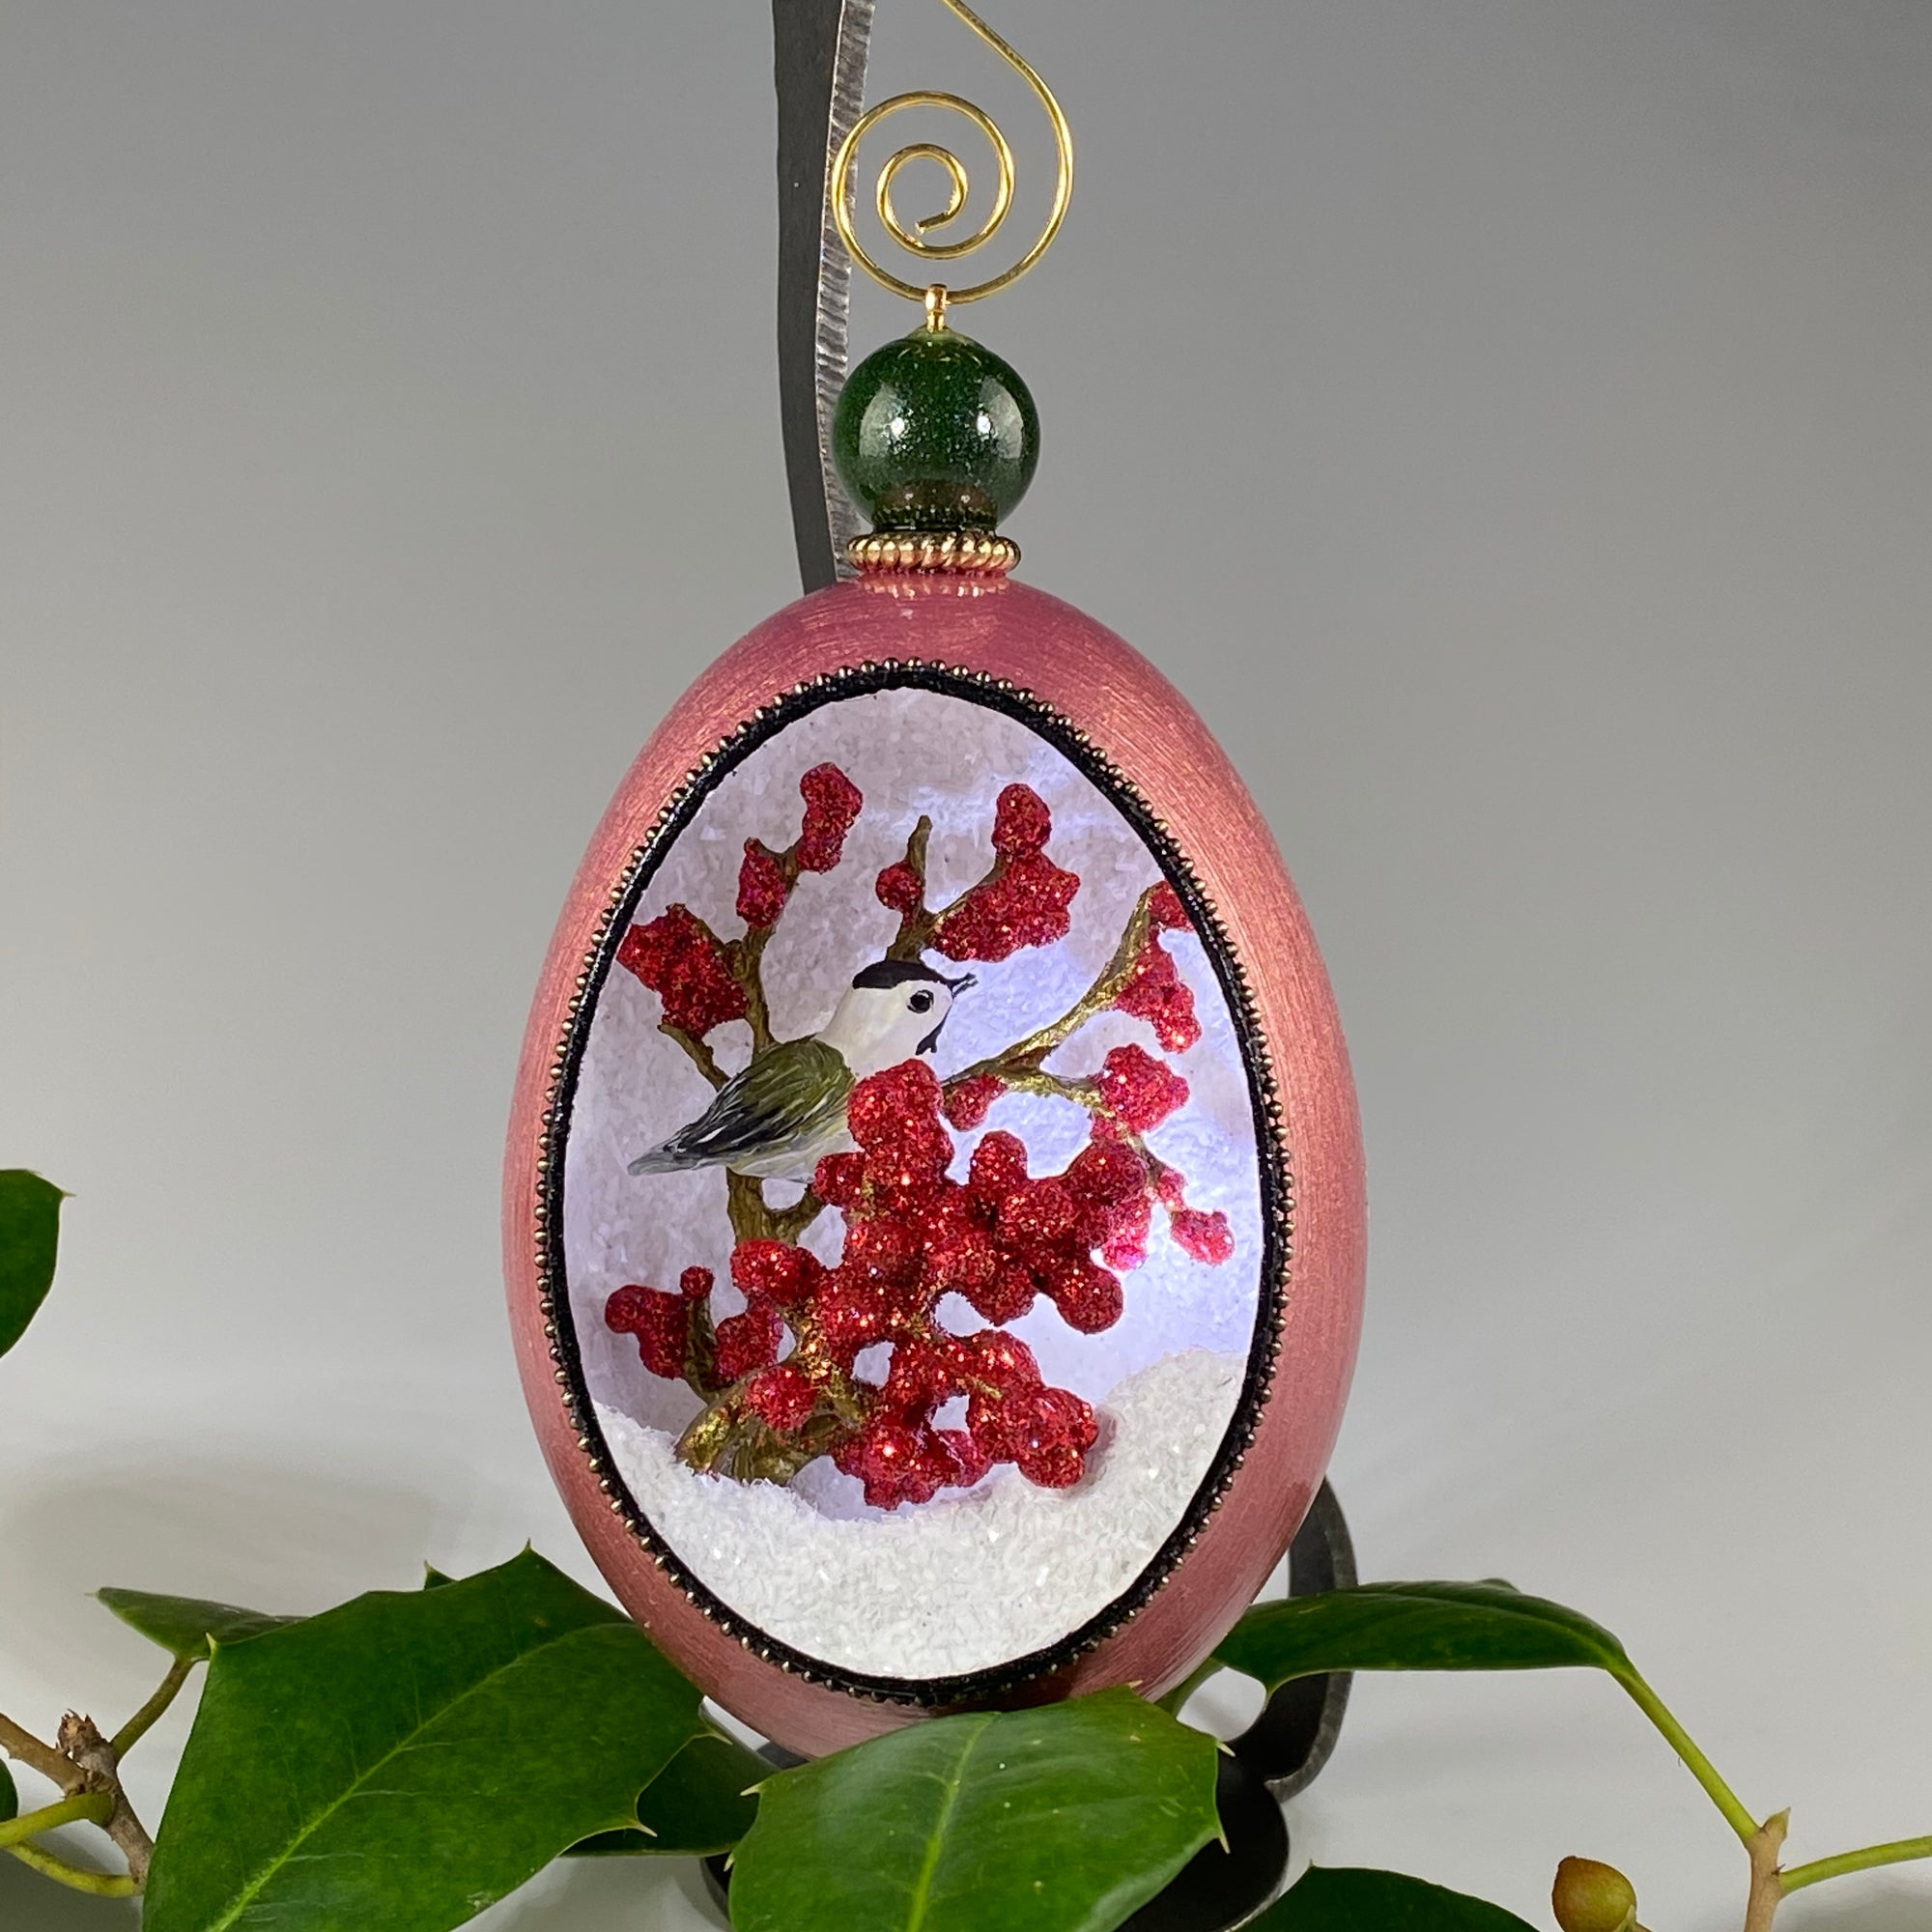 Winter Berries Ornament - Heart of the Home PA